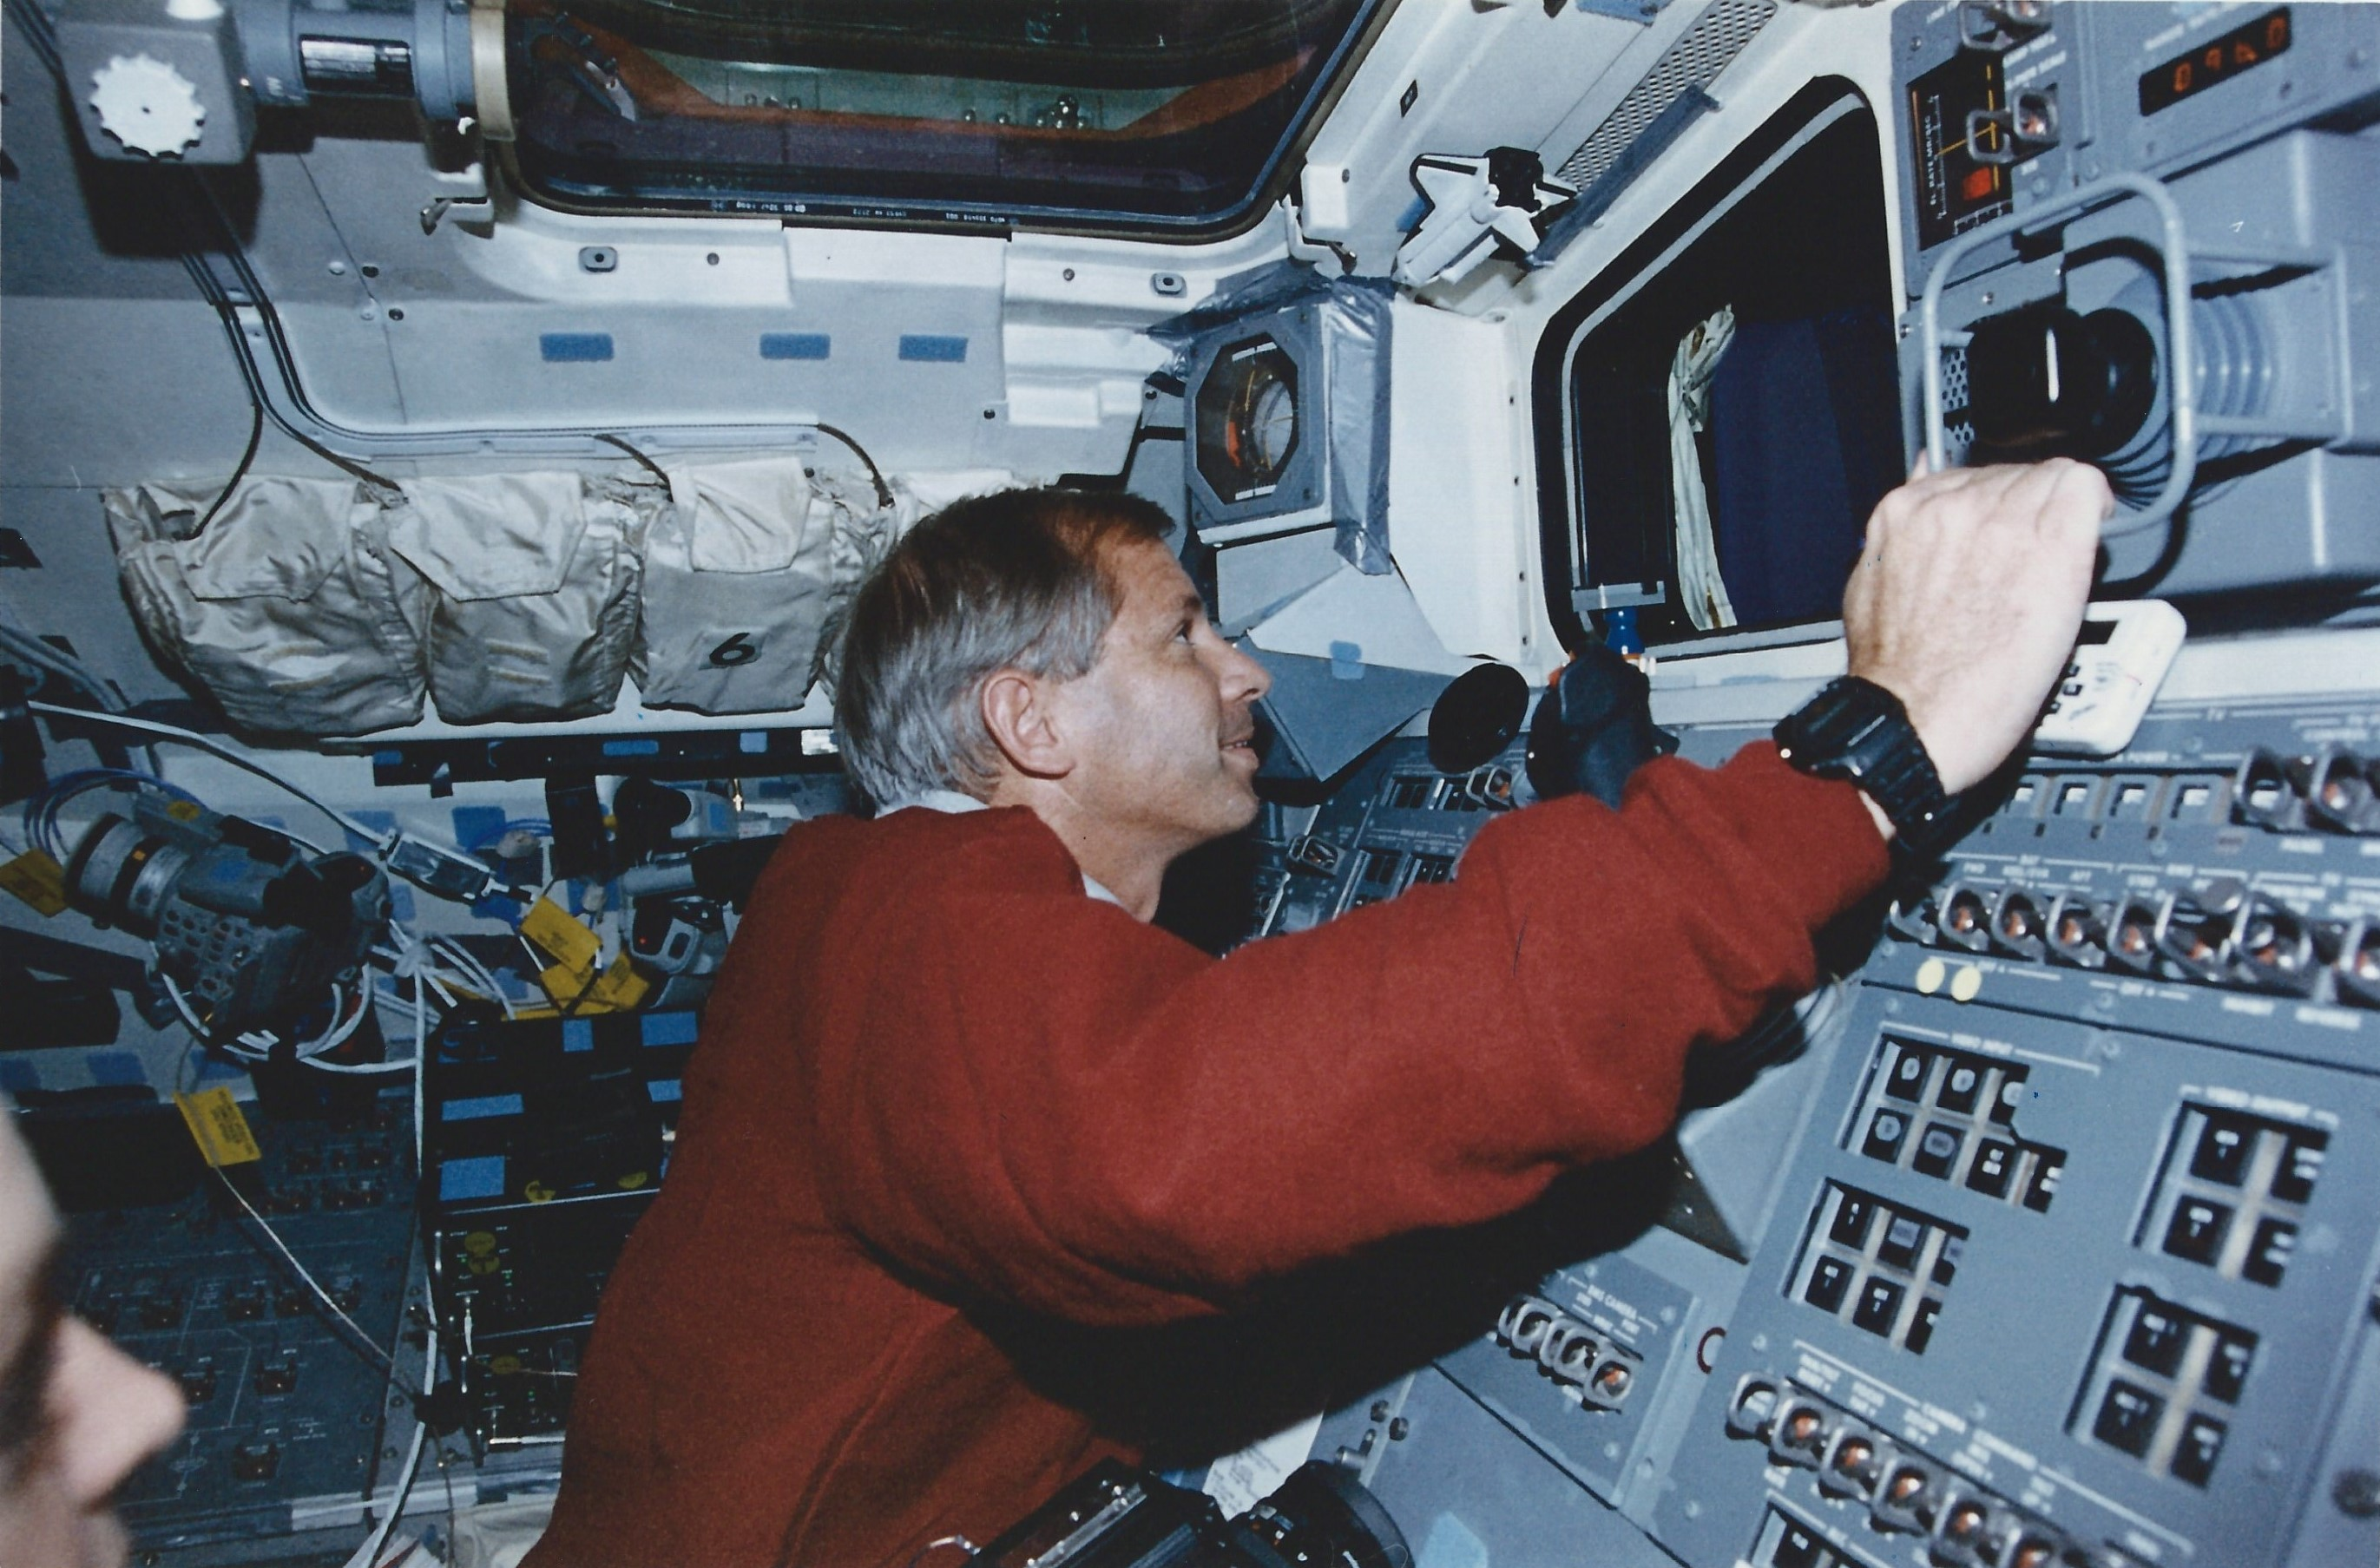 Ken Cockrell flies Columbia from aft flight deck during proximity operations on STS-80 (NASA STS080-334-002)